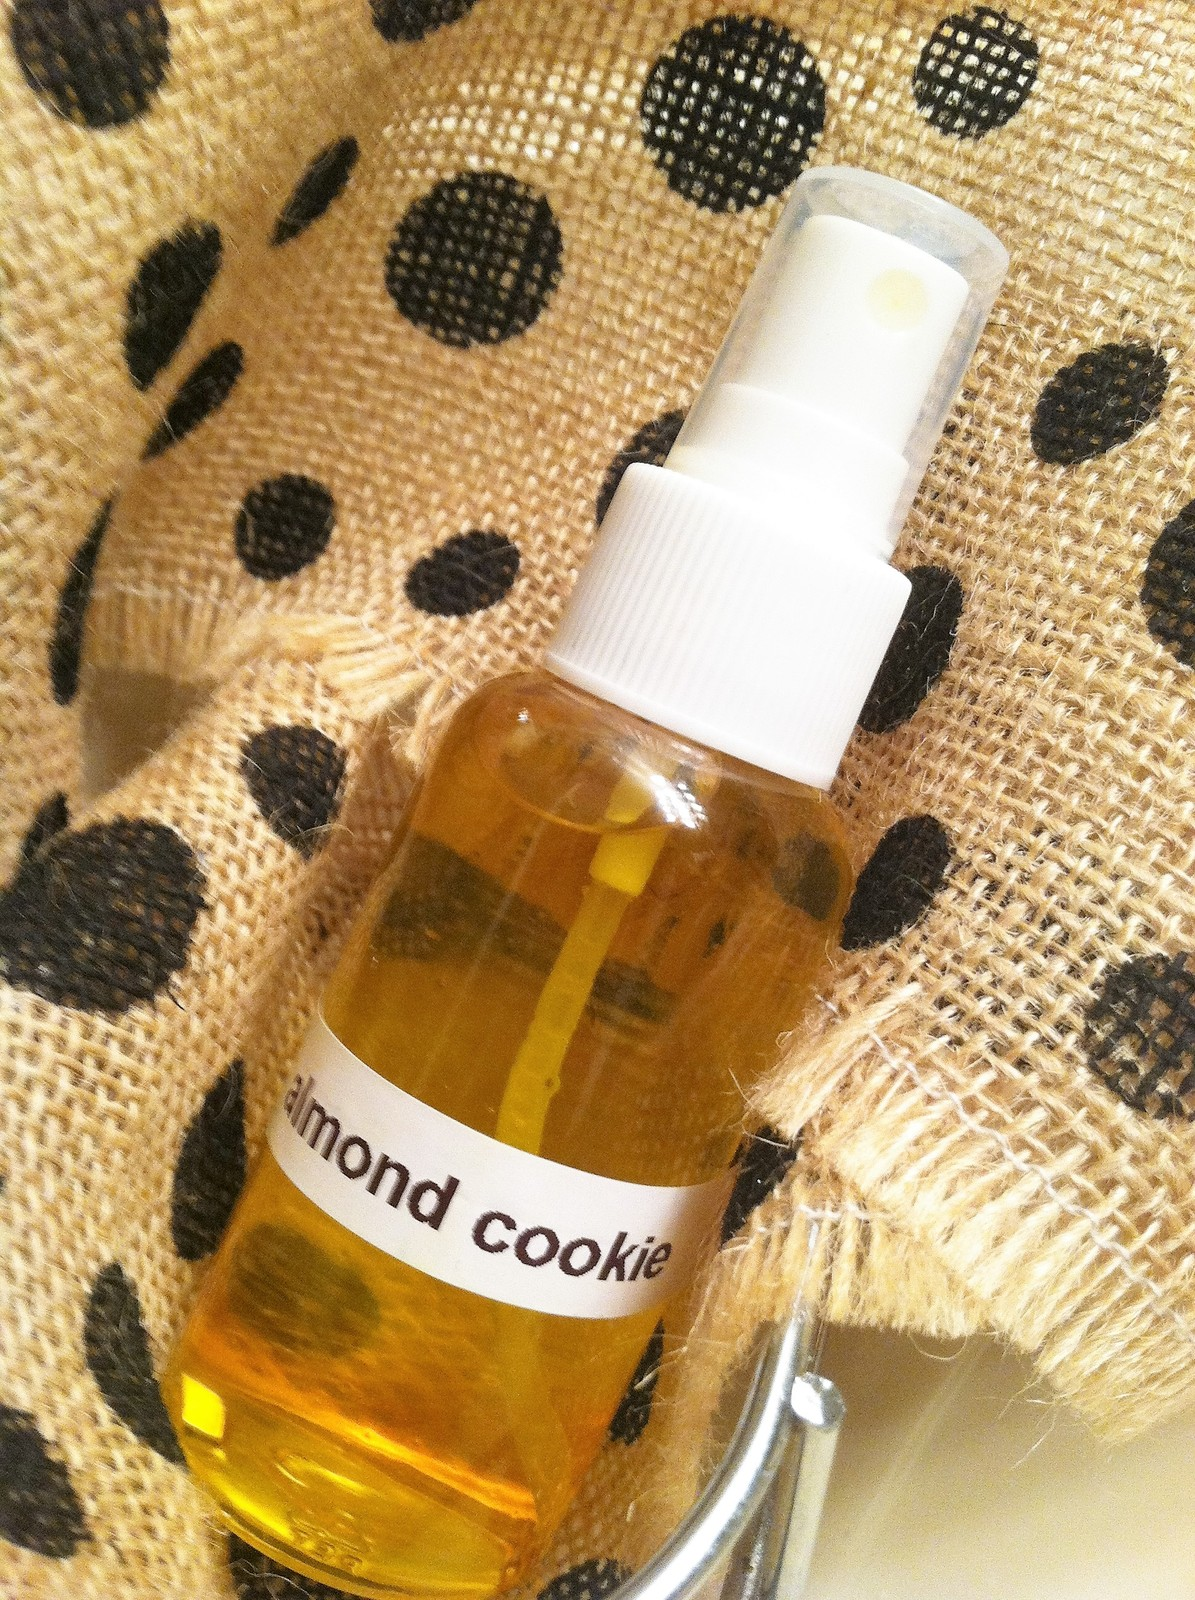 Almond cookie body spray, body spray mist, body spray, almond cookie